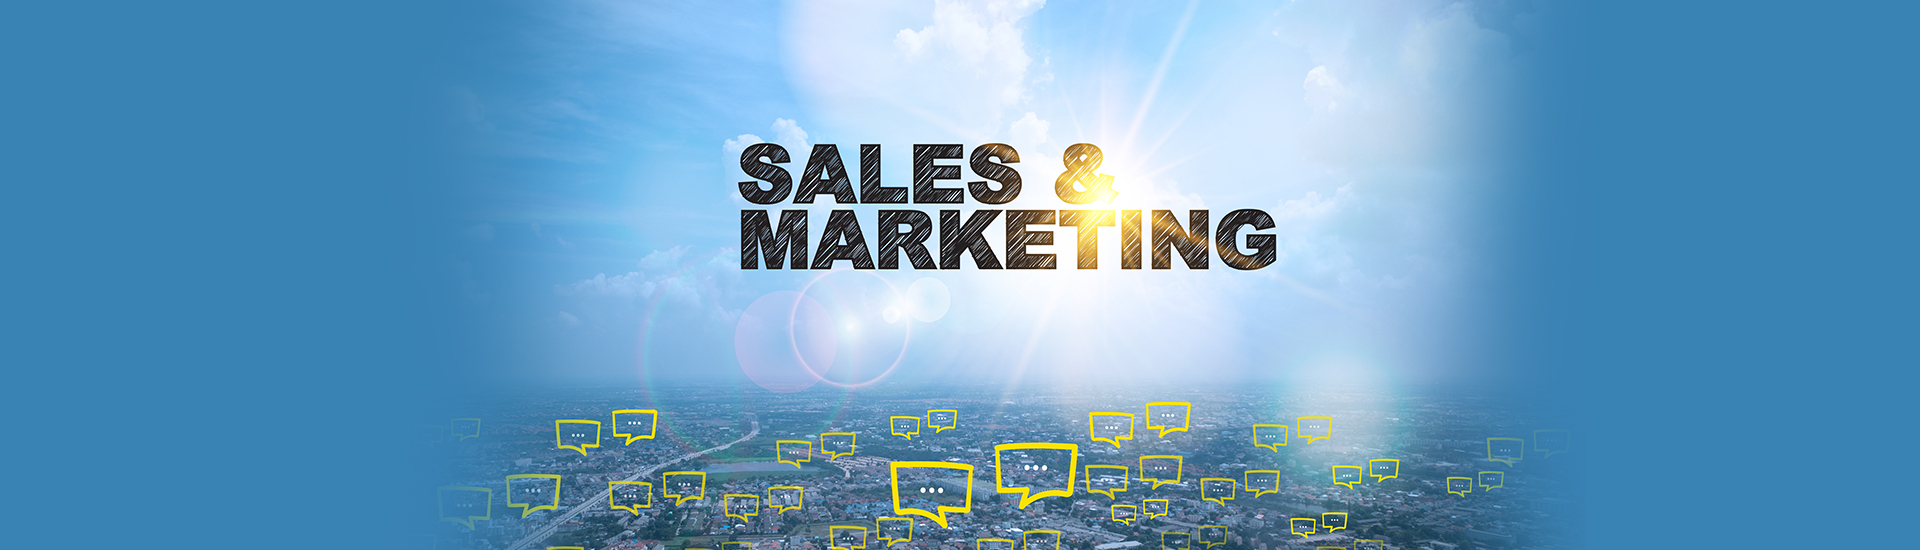 Sales & Marketing Online Certified Course Archives - Talentedge